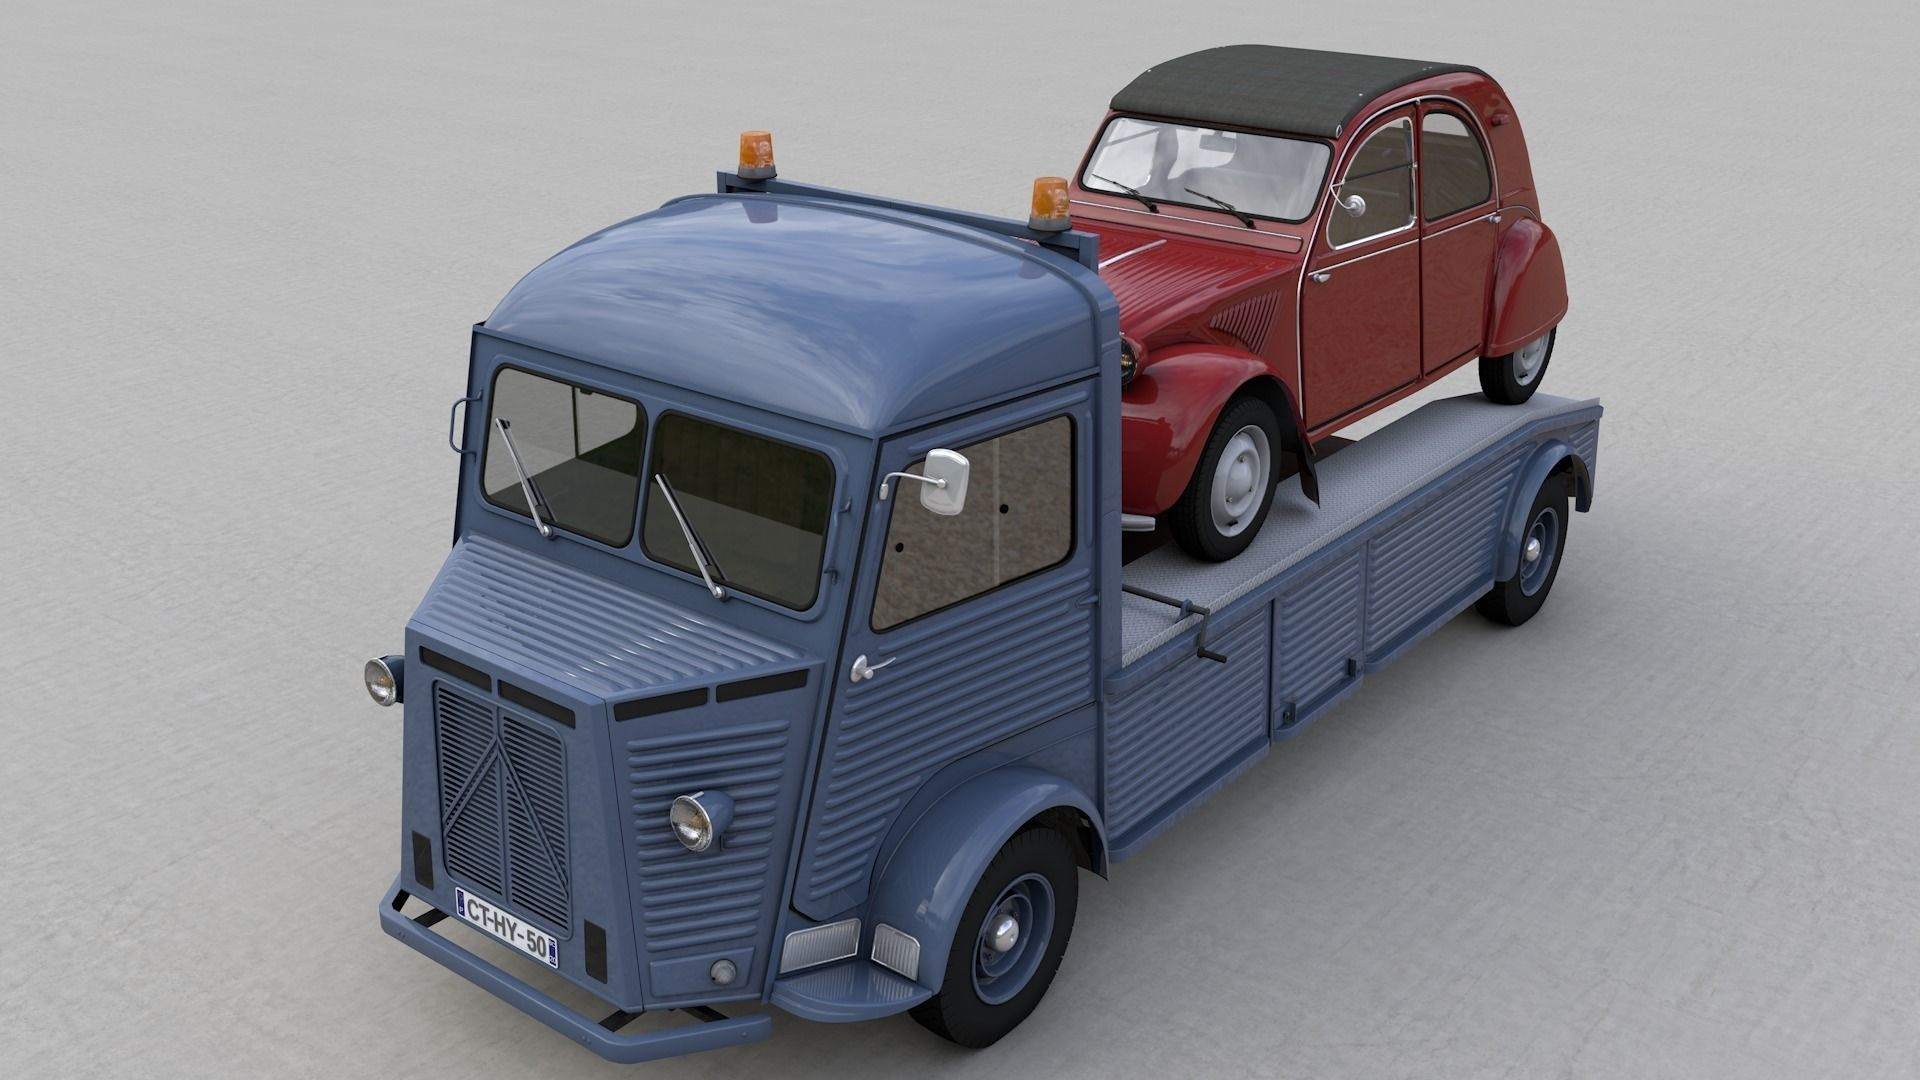 CITROEN HY TRUCK 1950 and CITROEN 2CV 1957